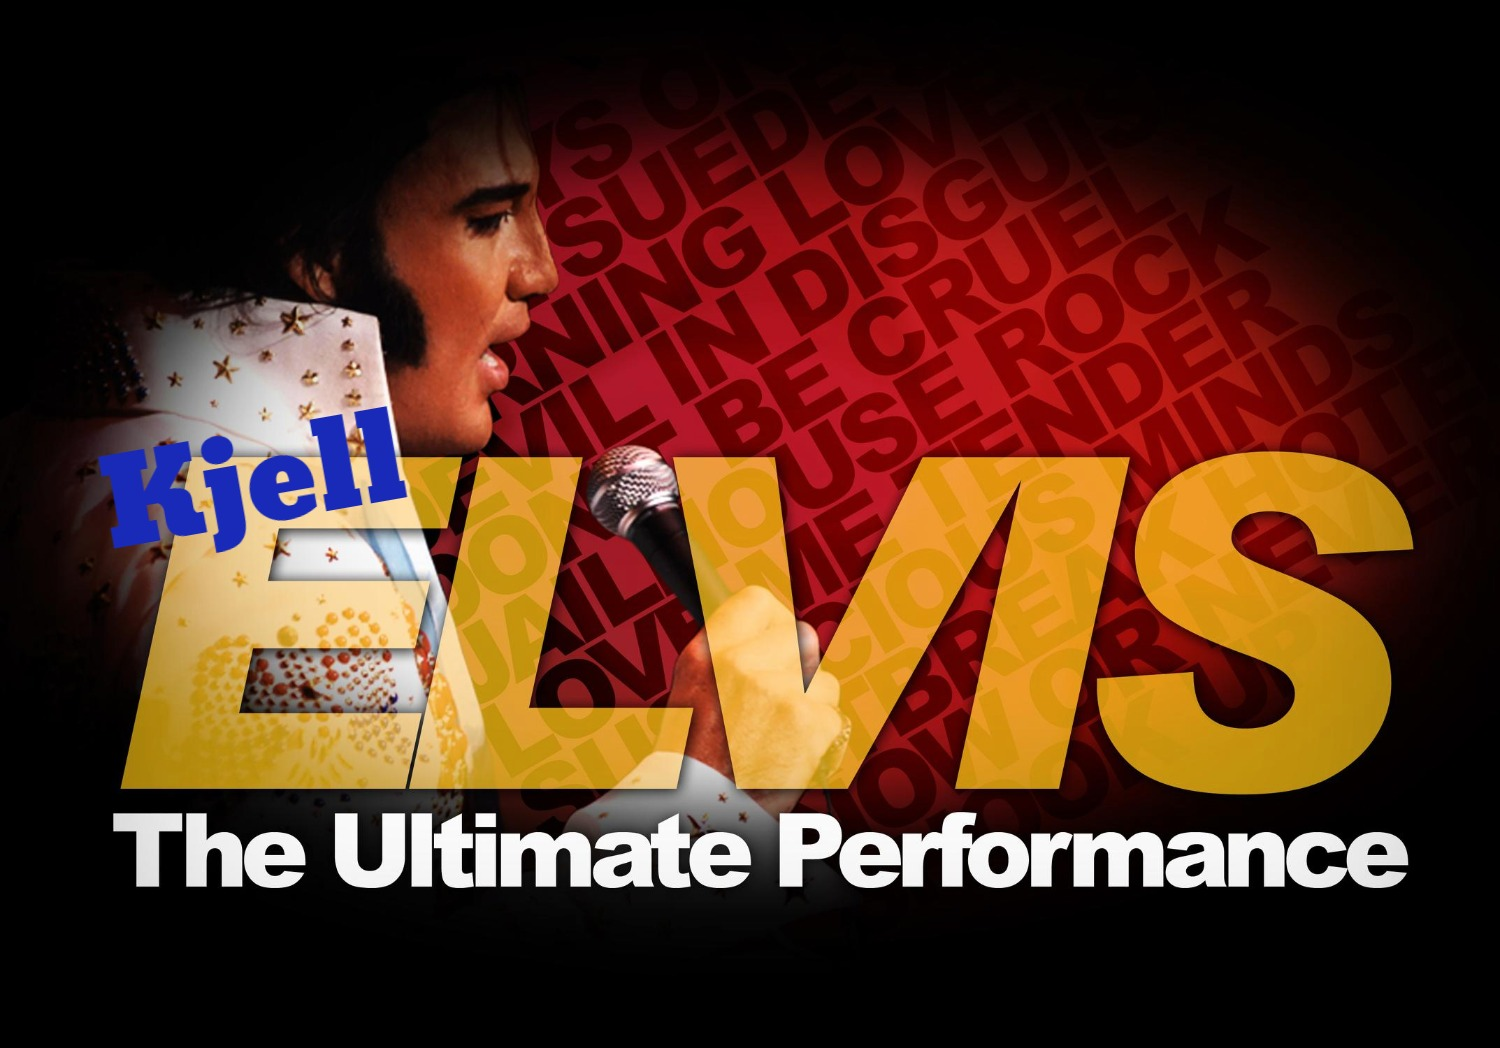 Kjell Elvis The Ultimate Performance